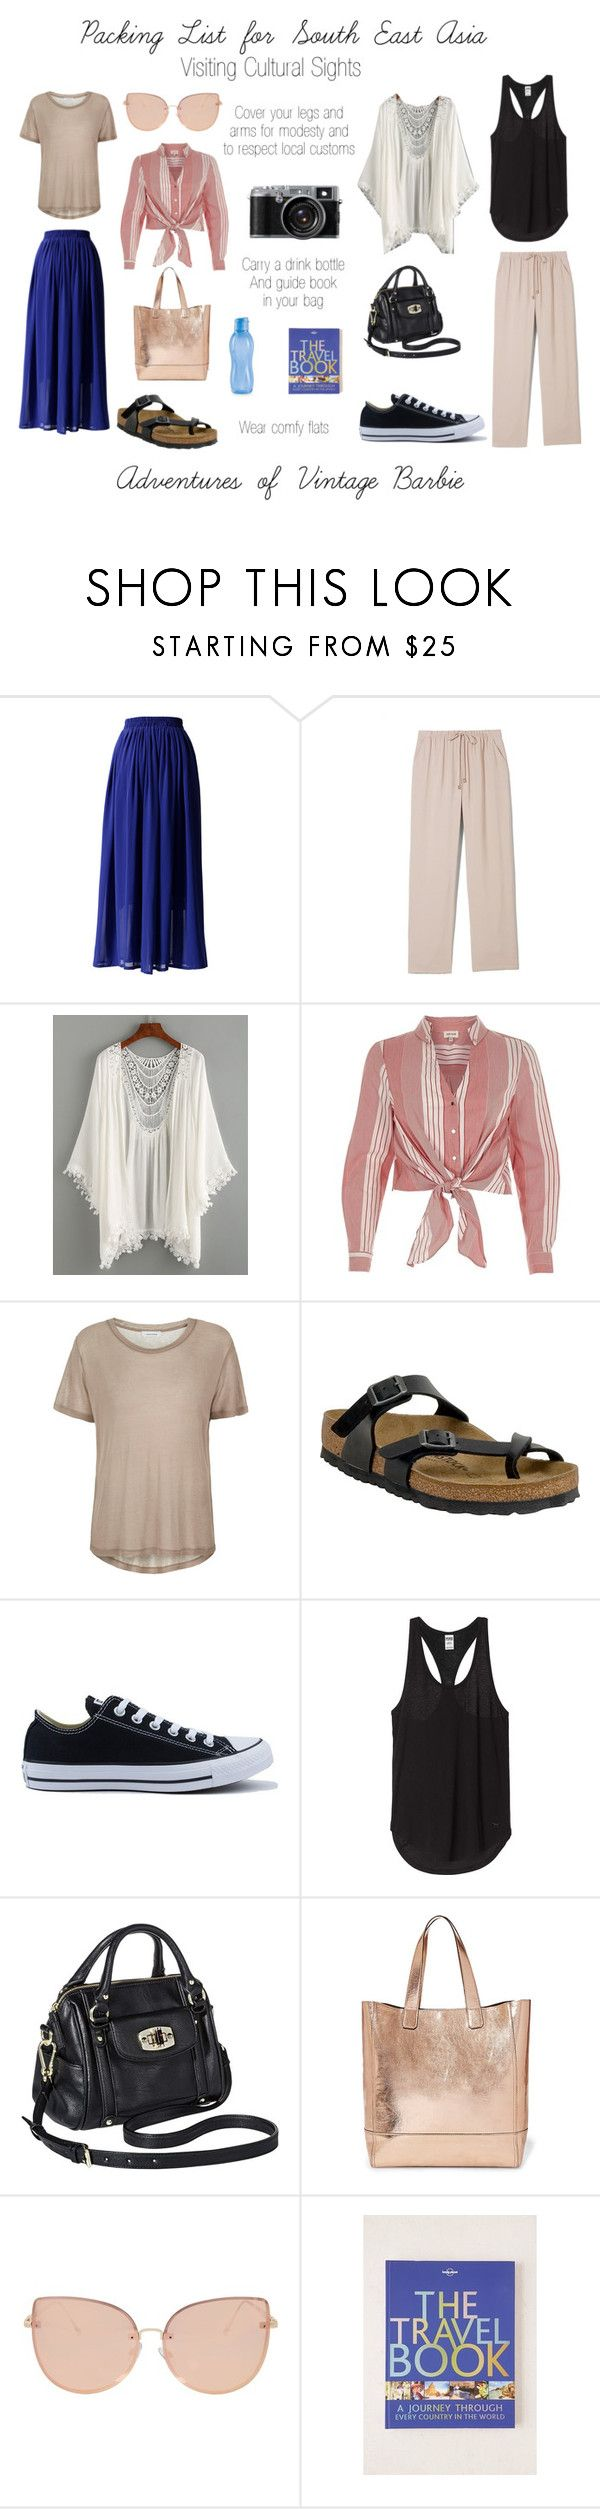 """""""Packing list for South East Asia"""" by vintagebarbie17 on Polyvore featuring Chicwish, Vince Camuto, River Island, Samsøe & Samsøe, Birkenstock, Converse, Merona, Steve Madden, Topshop and Lonely Planet"""